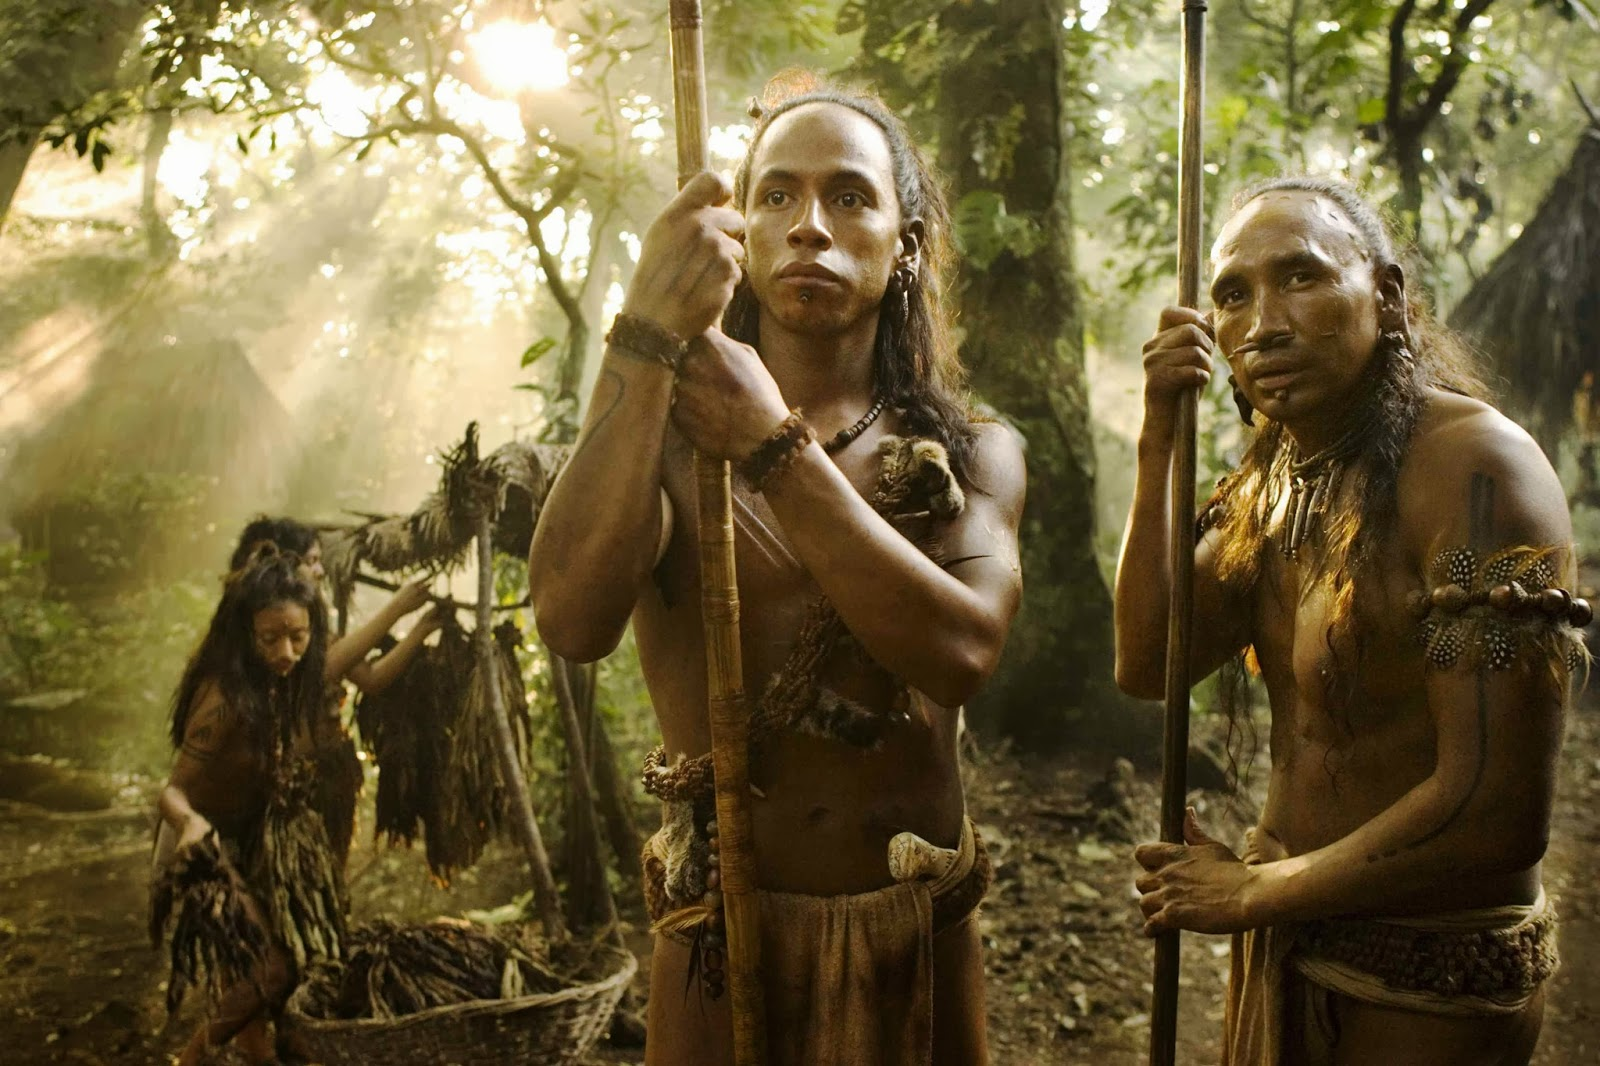 Forum on this topic: Marion peru fappening, mel-gibson-movie-apocalypto-four-months-late/